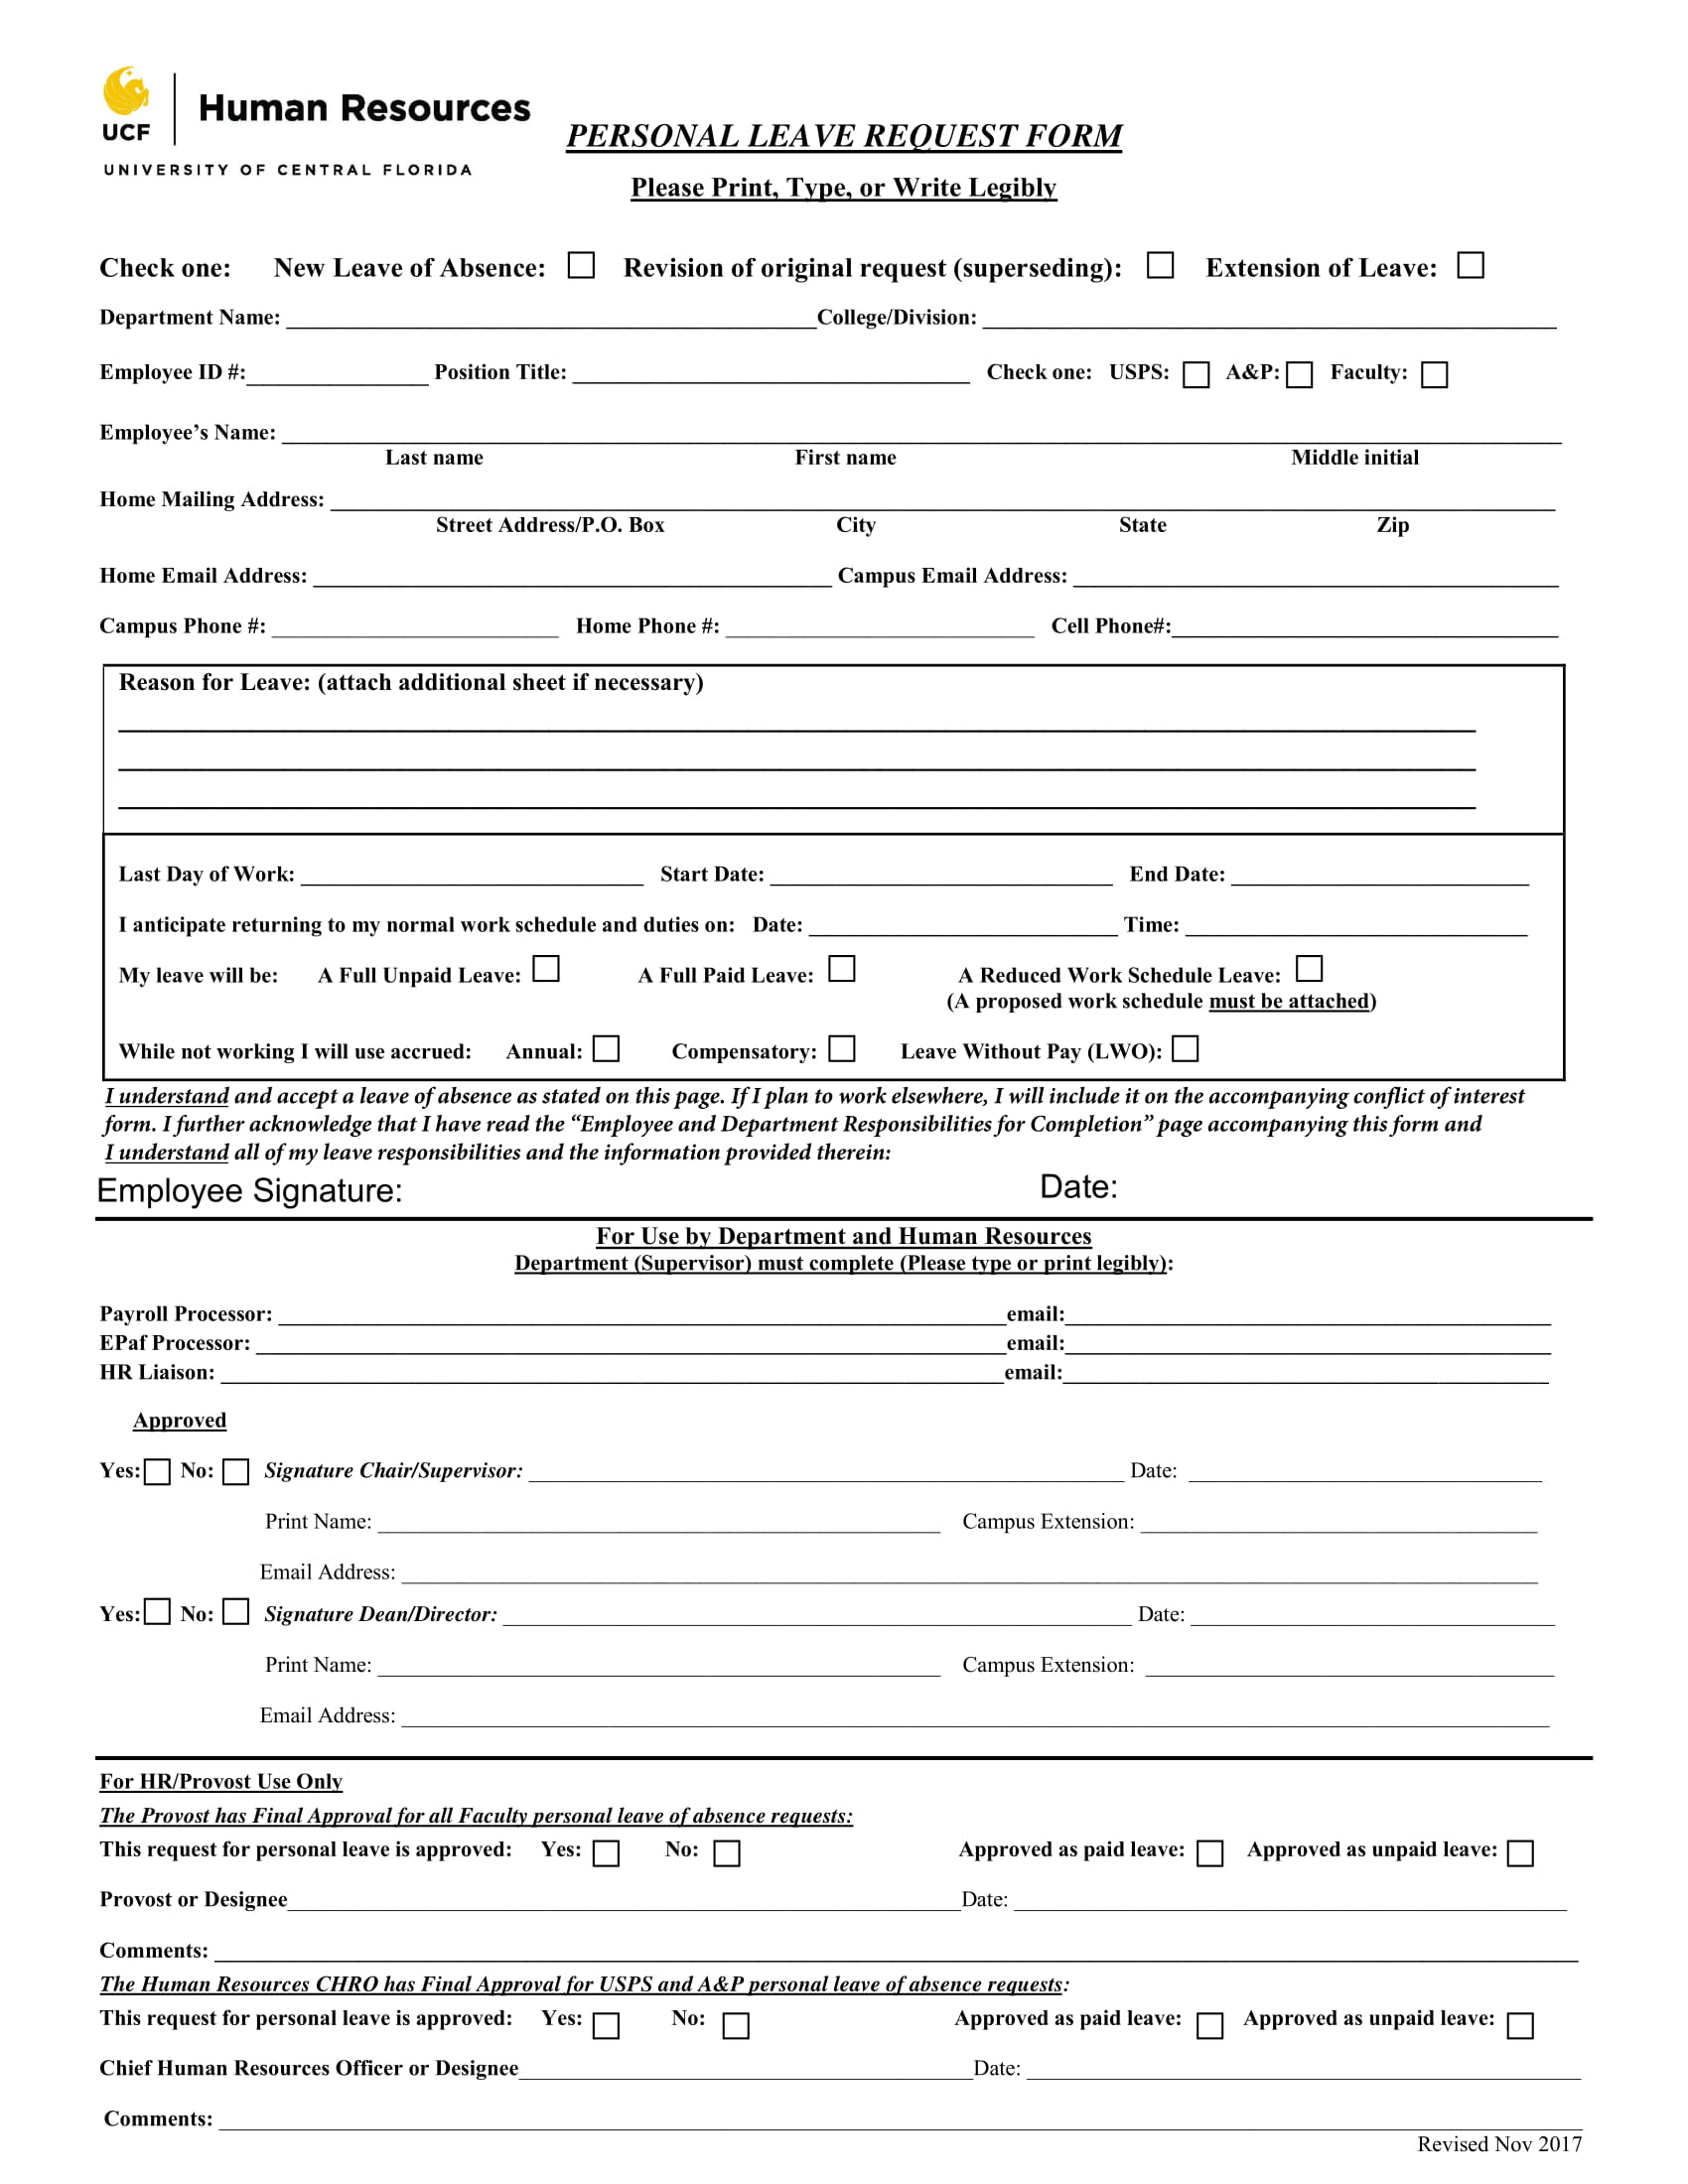 Personal Leave Request Form Example